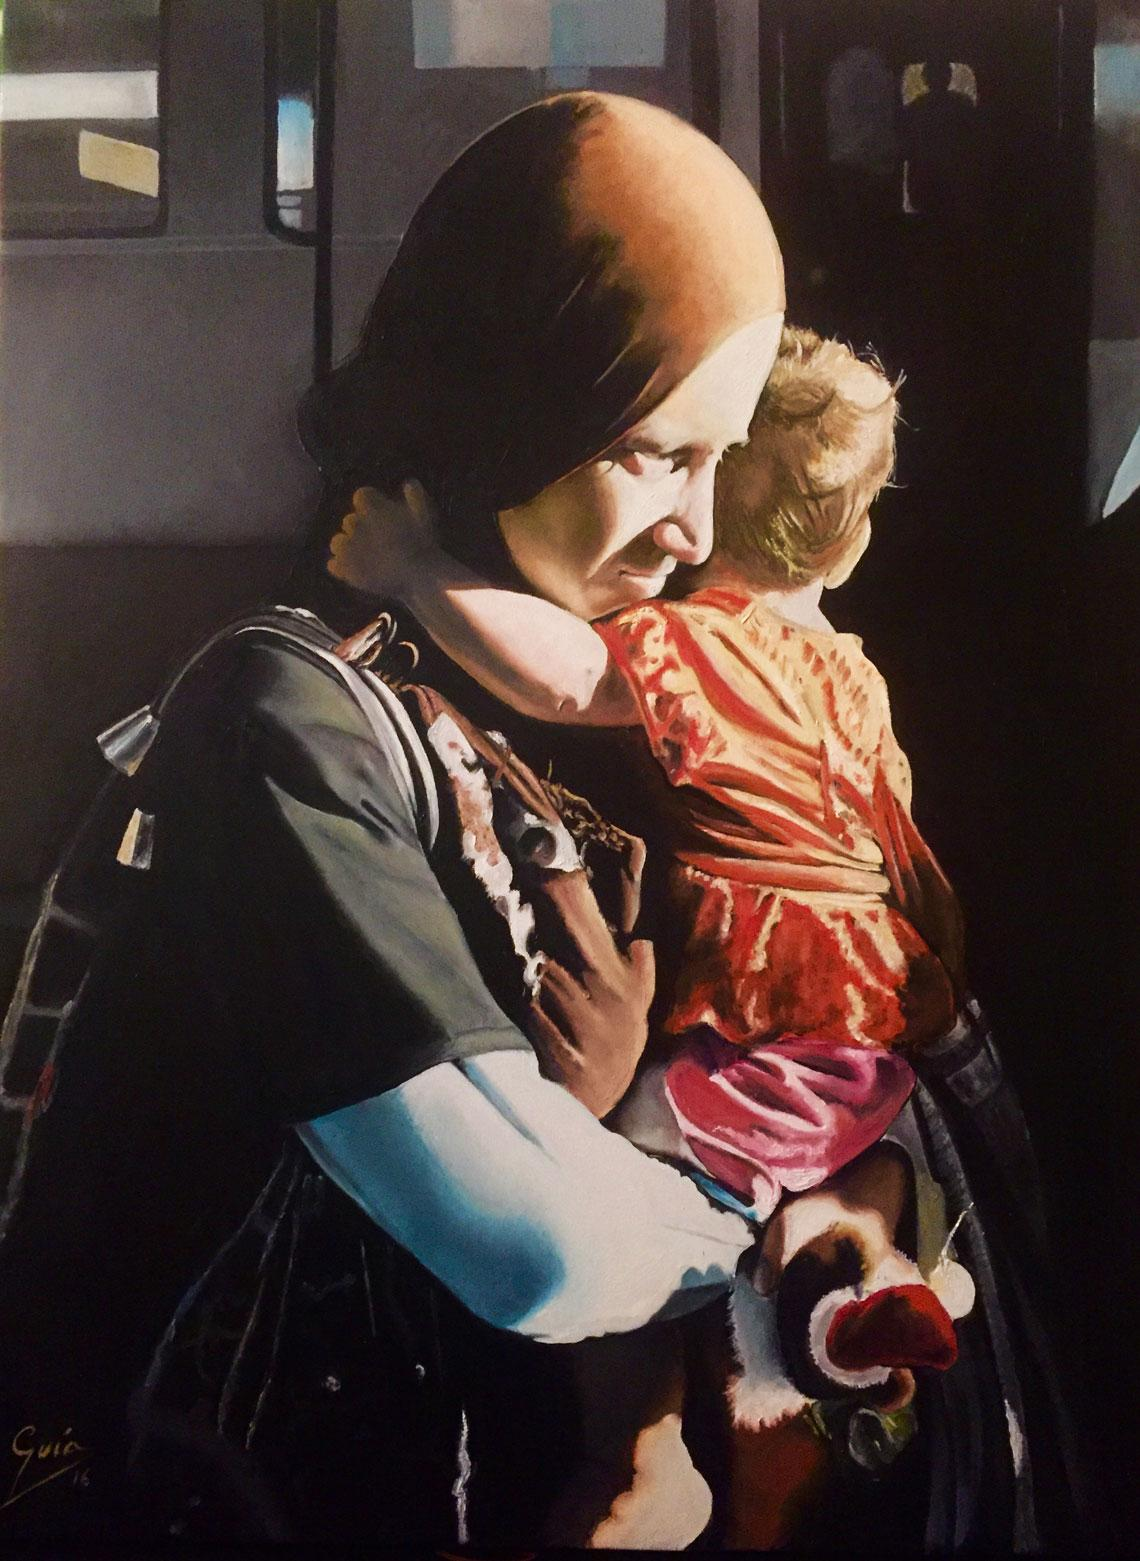 The Exile - Miguel Guía Realist Oil Paint on Canvas